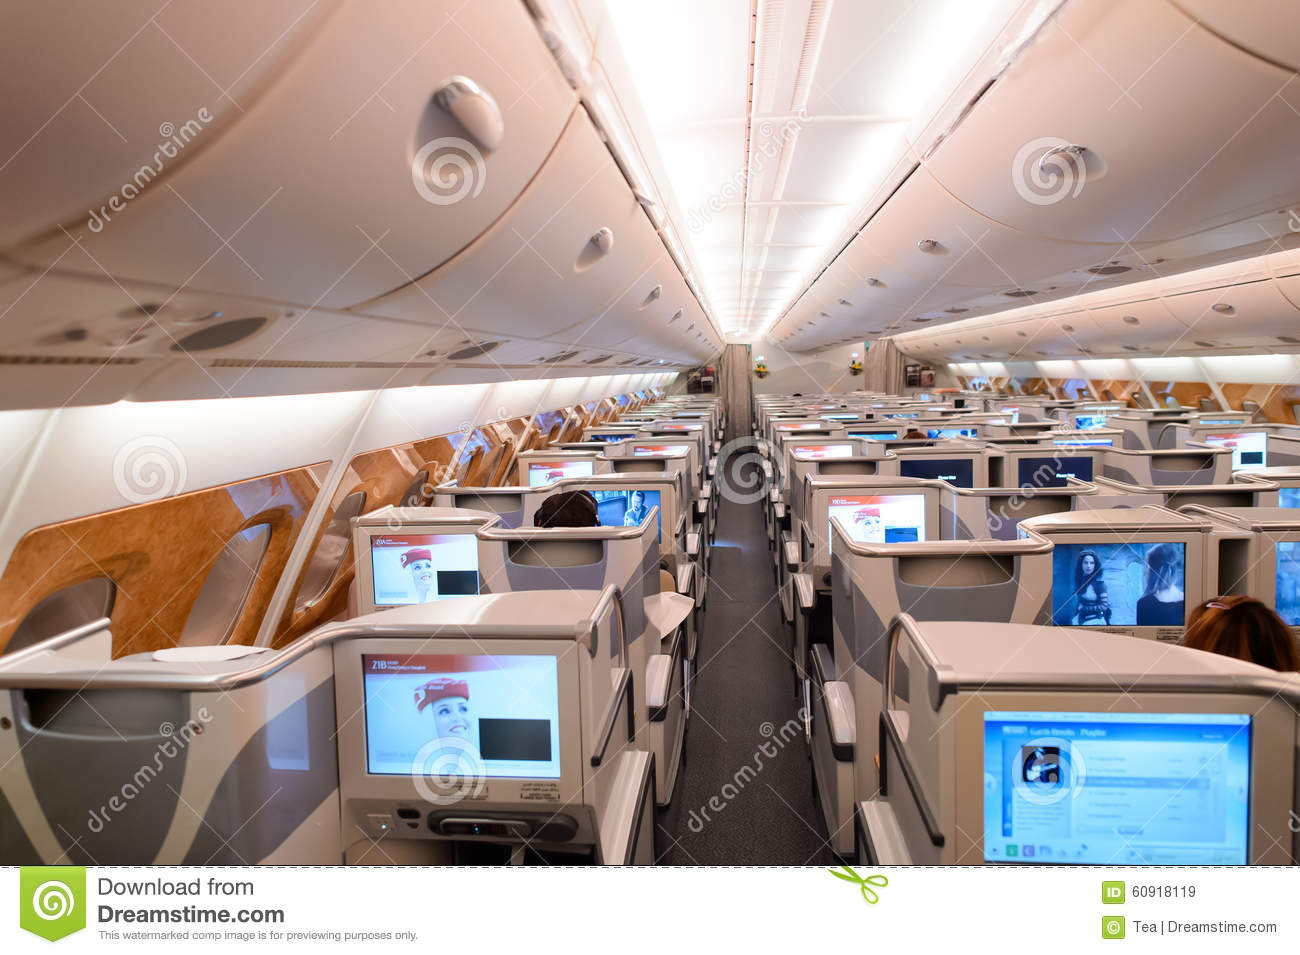 The main difference between business class Arab airlines from European 29